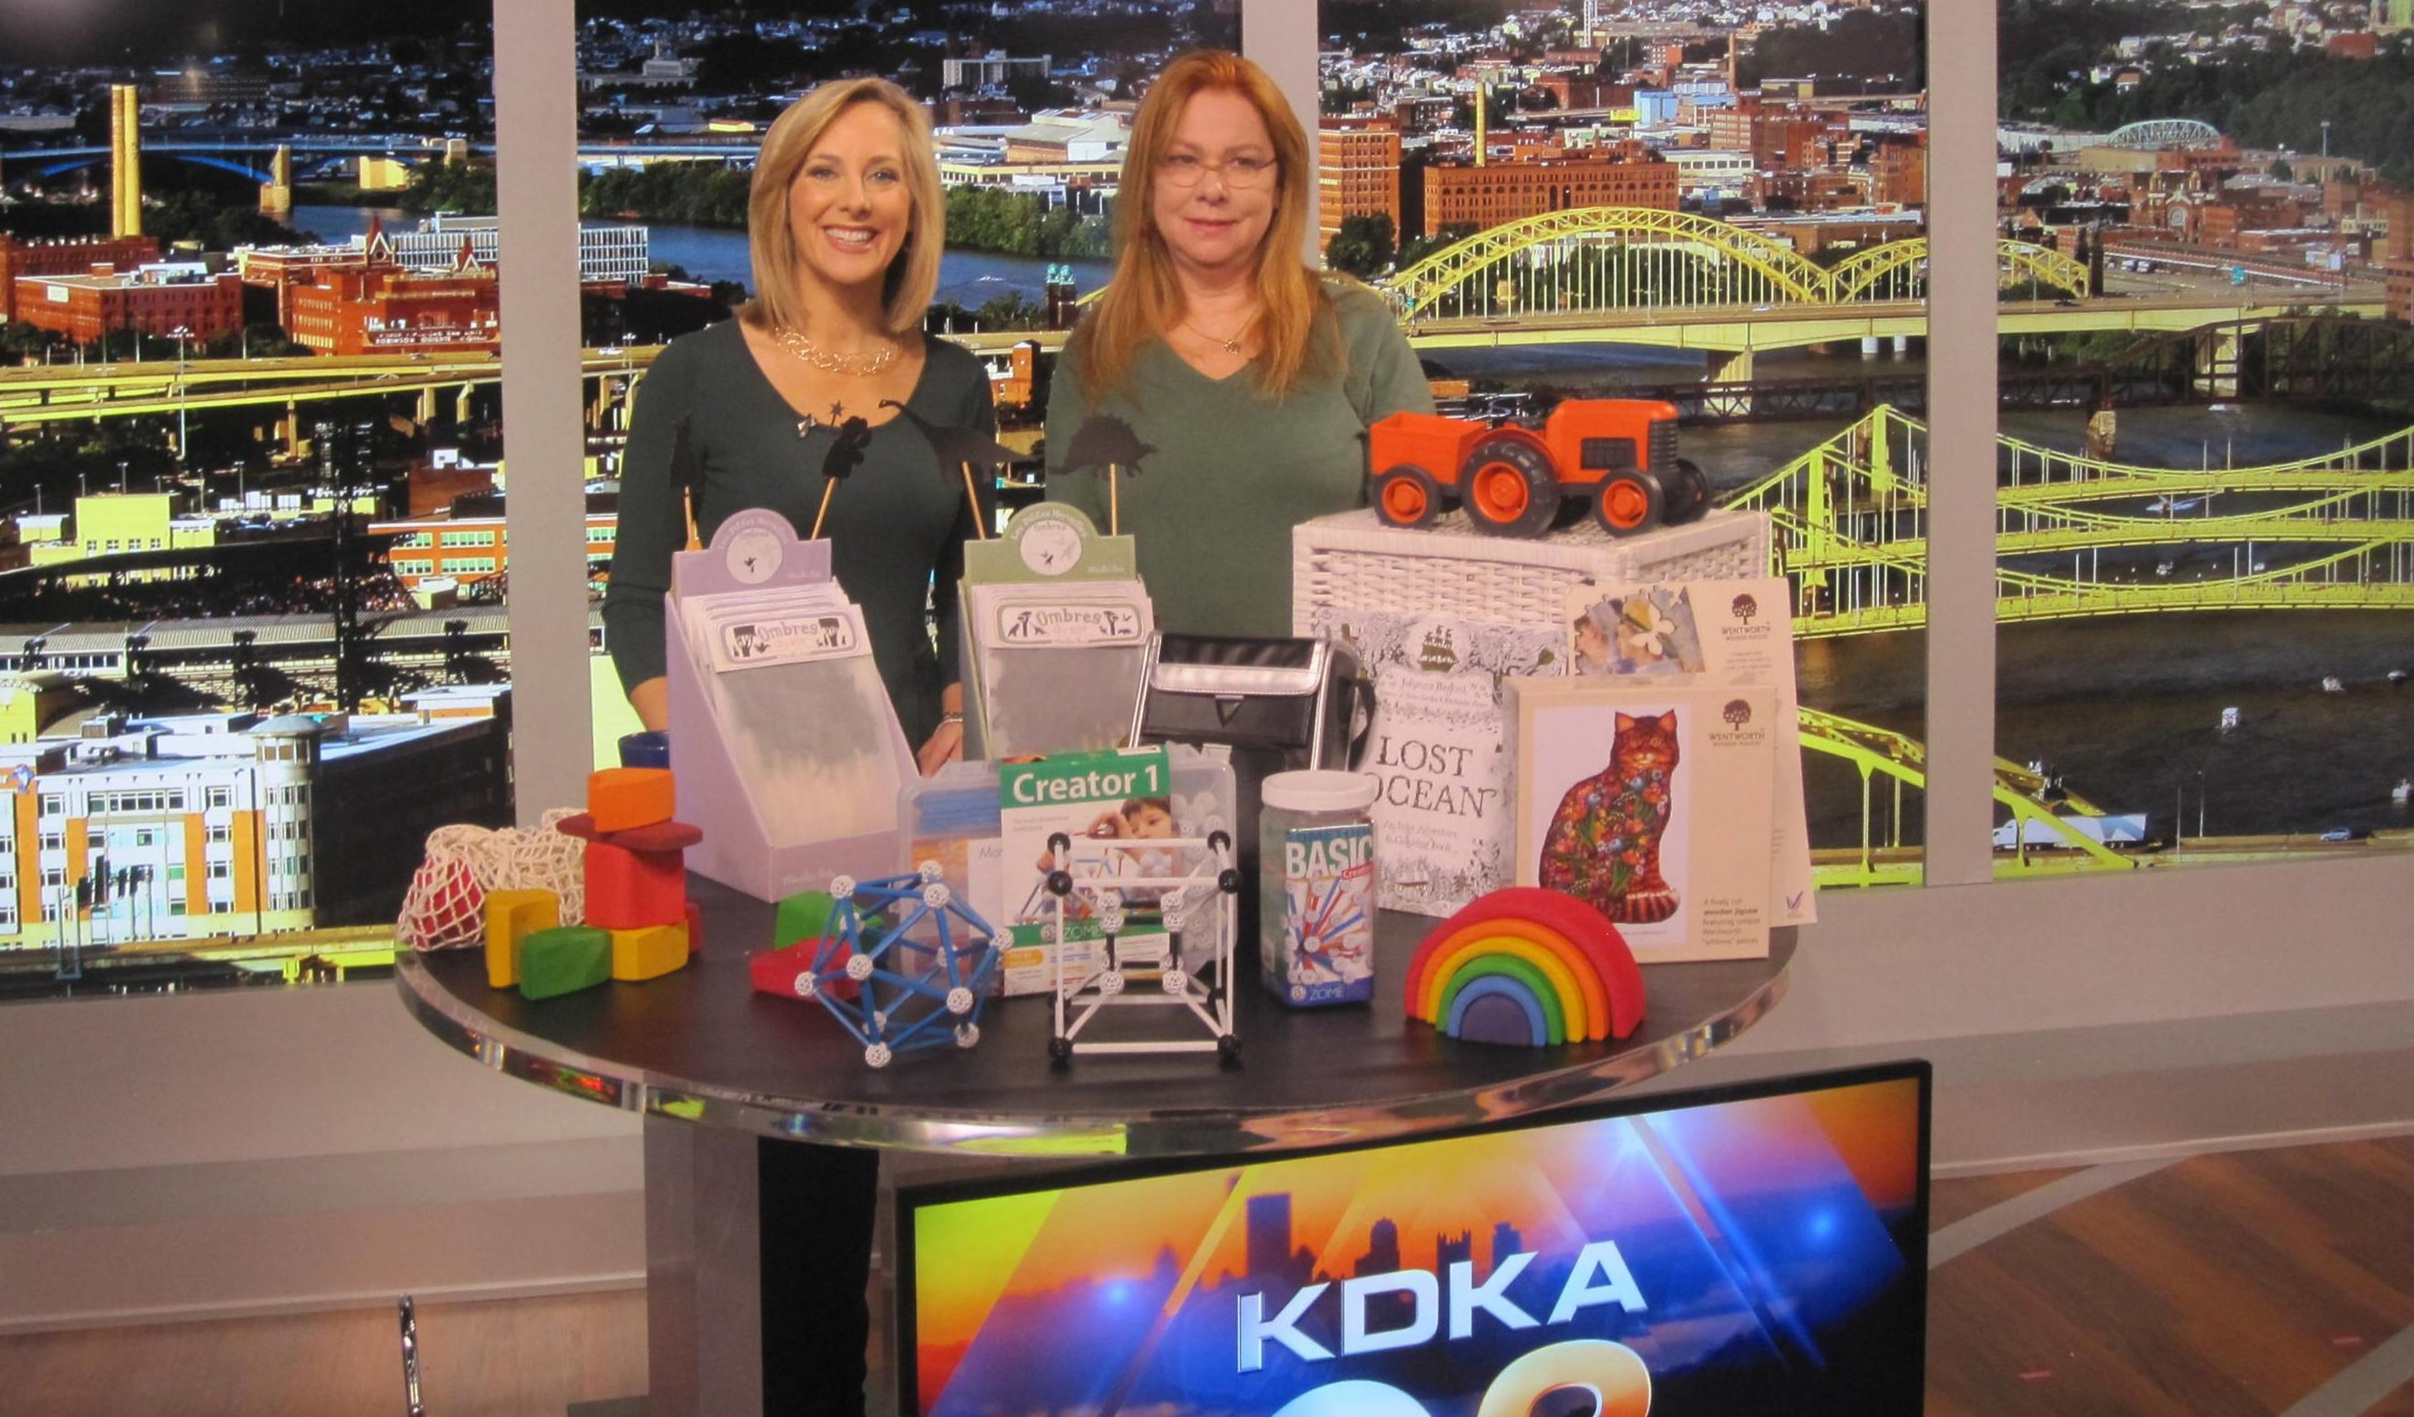 Nan demonstrates some of the best toys for free play on Pittsburgh's KDKA.